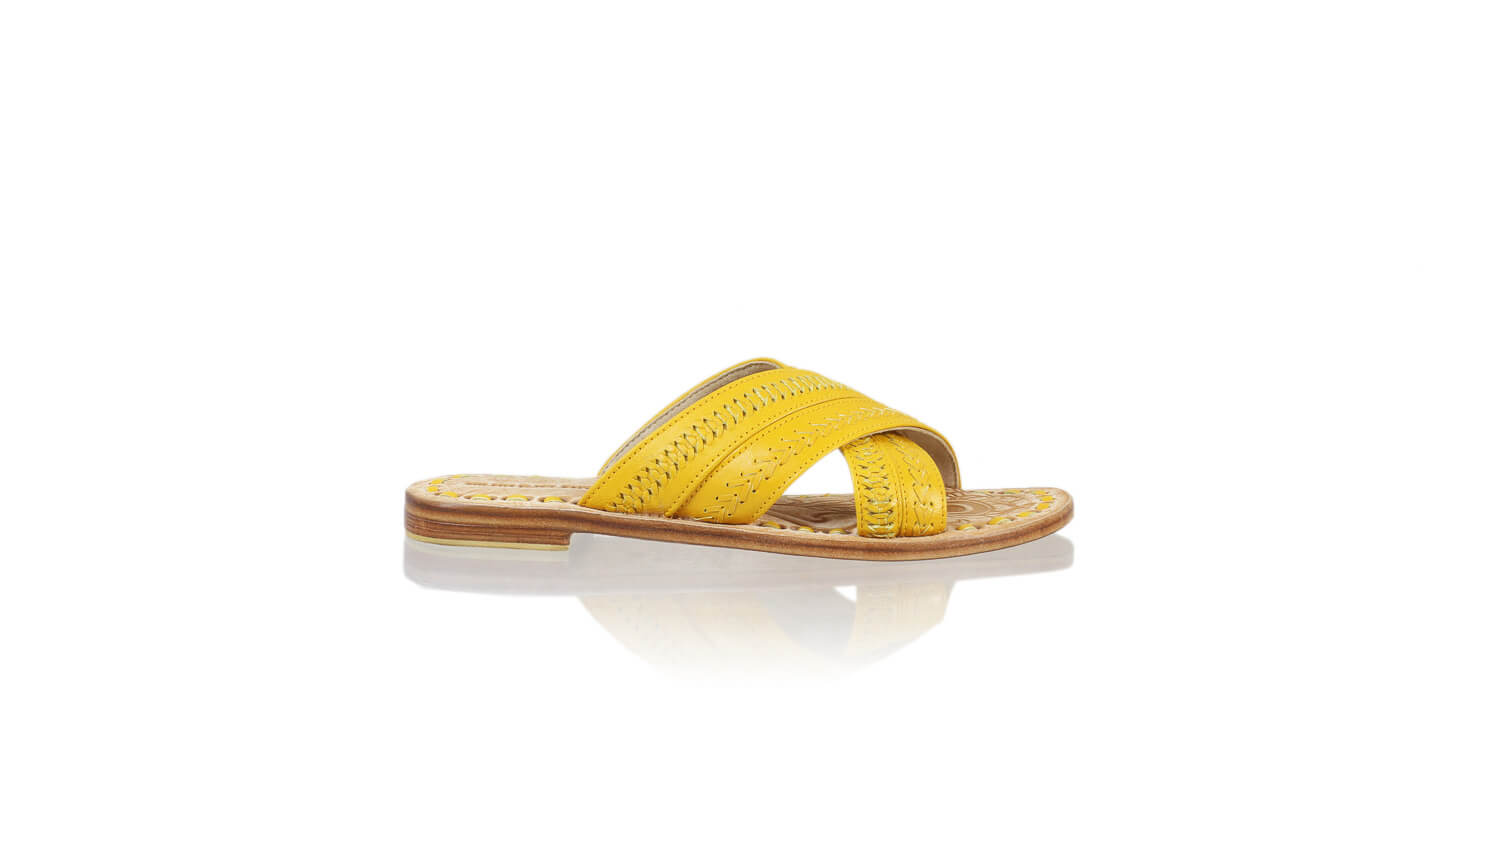 Leather-shoes-Paramita 20mm Flat - Yellow-sandals flat-NILUH DJELANTIK-NILUH DJELANTIK